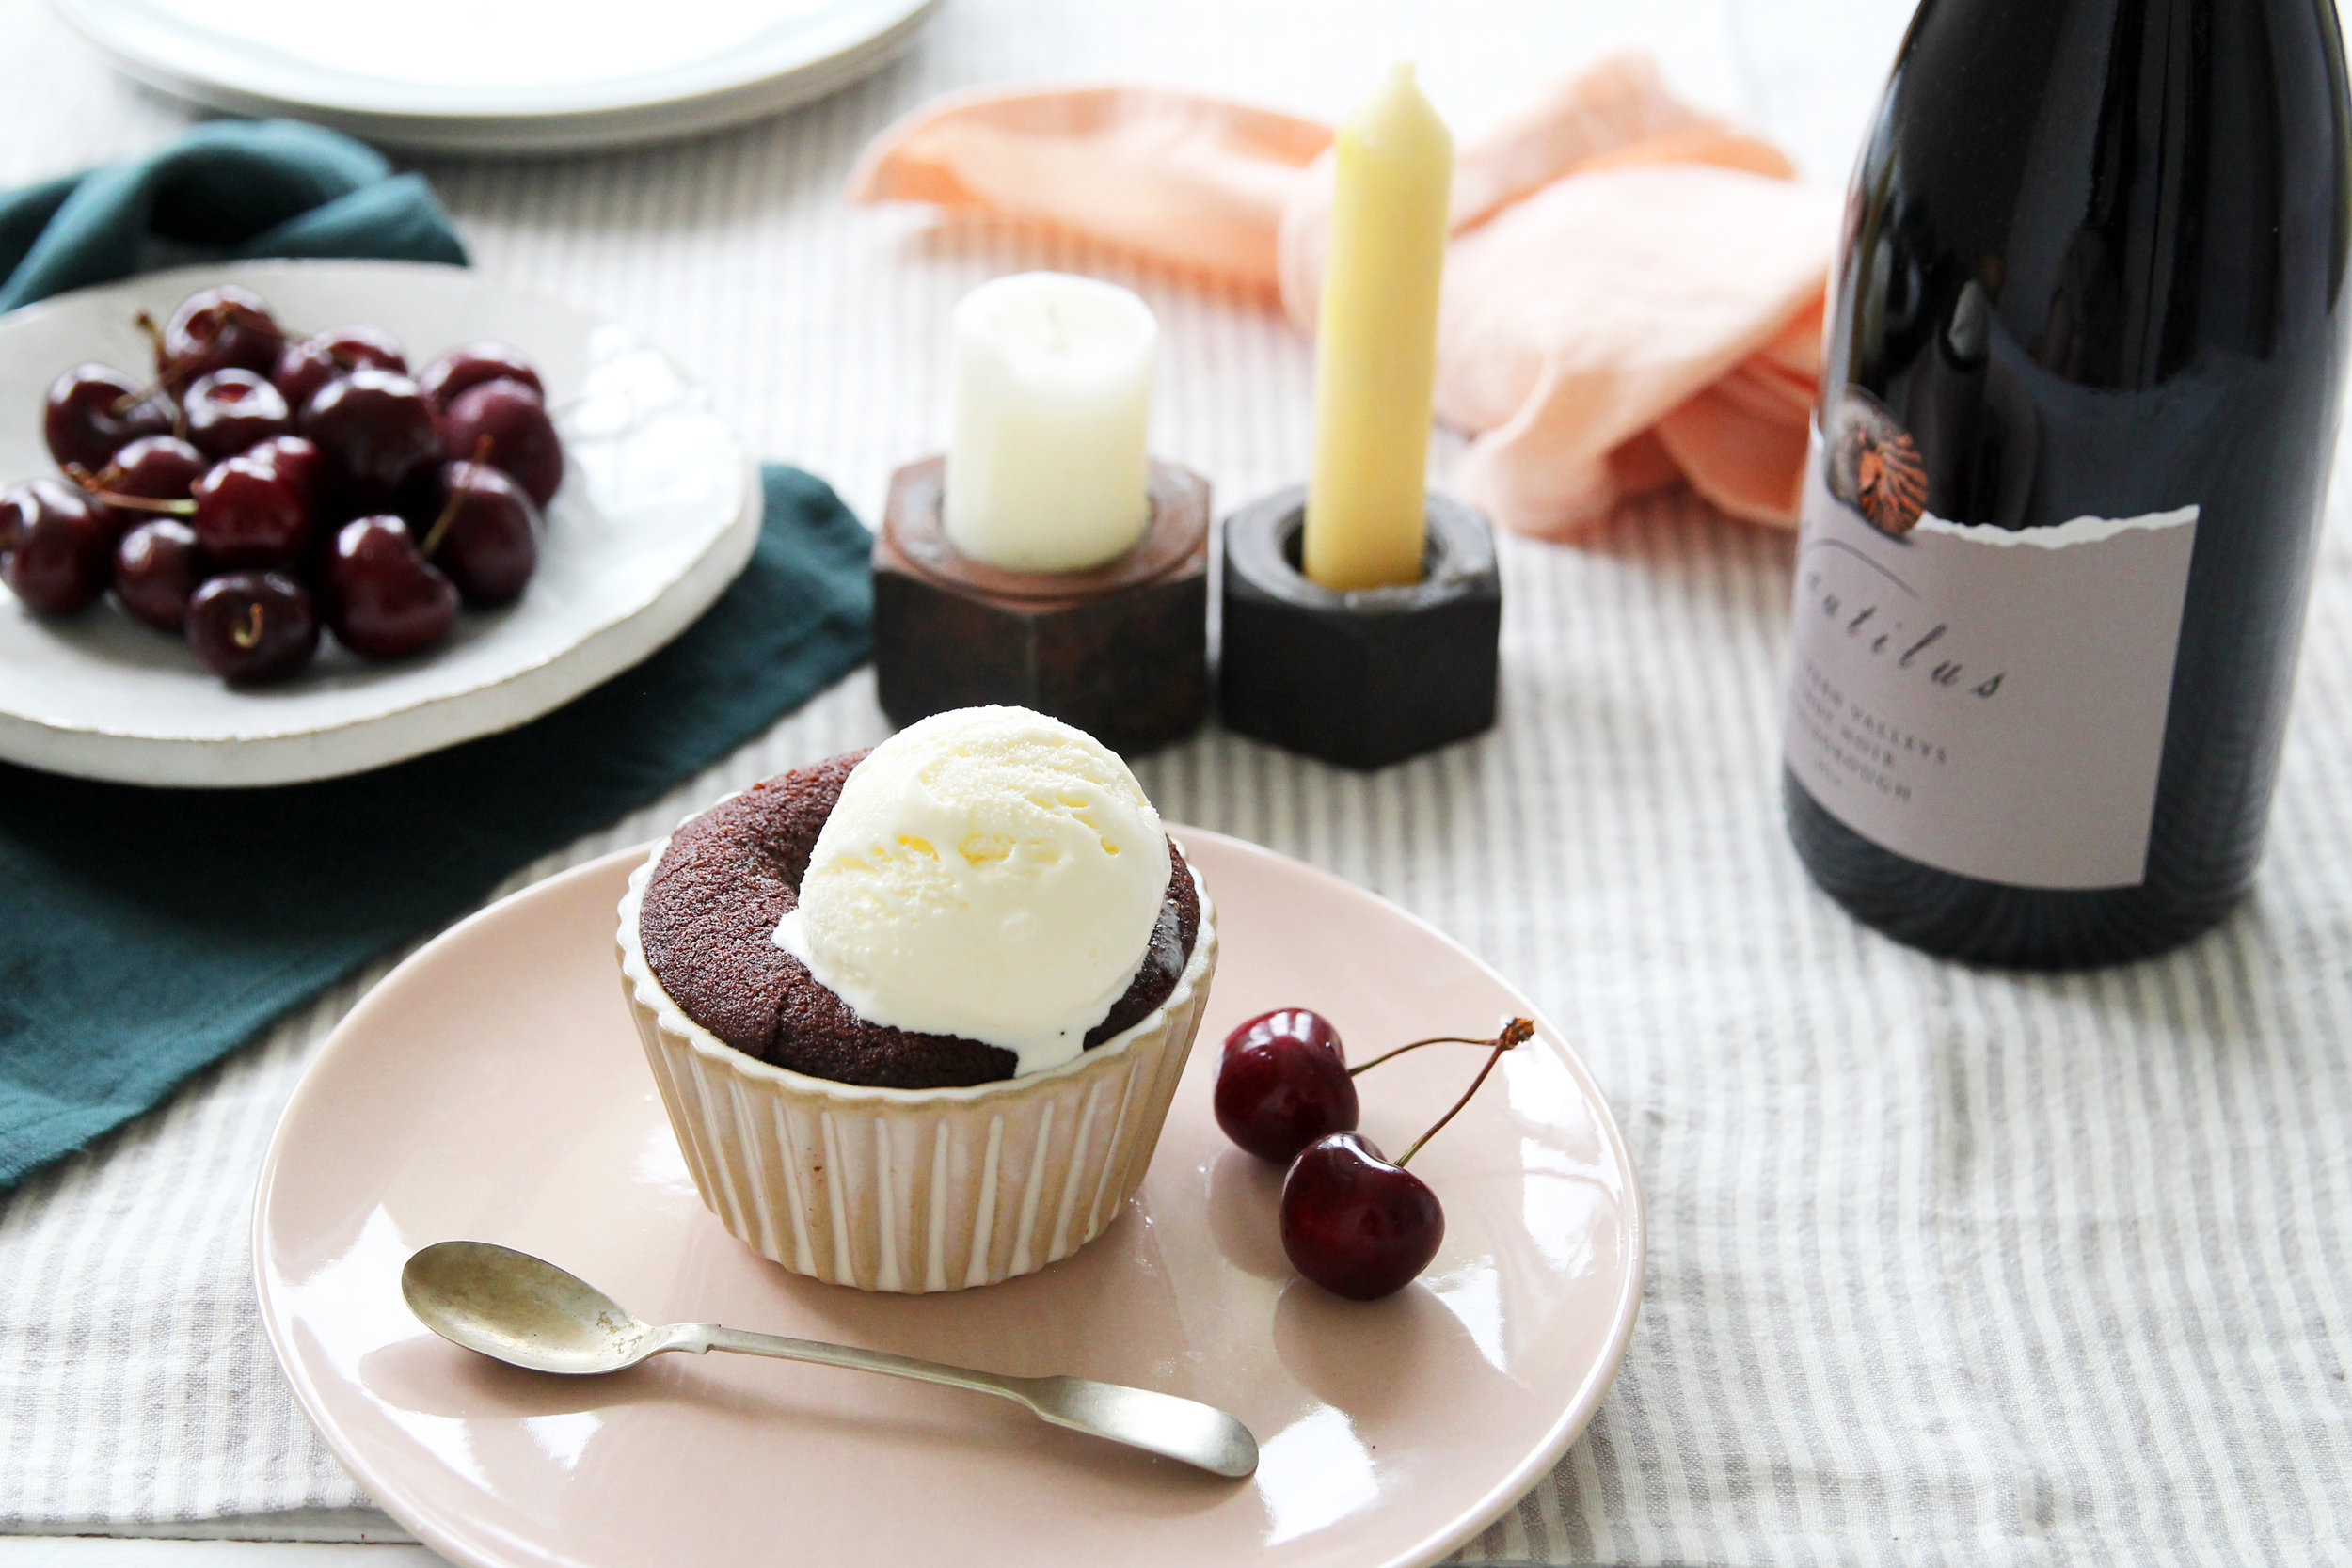 Nautilus_Xmas High res_Choc cherry pinot pudding3.jpg